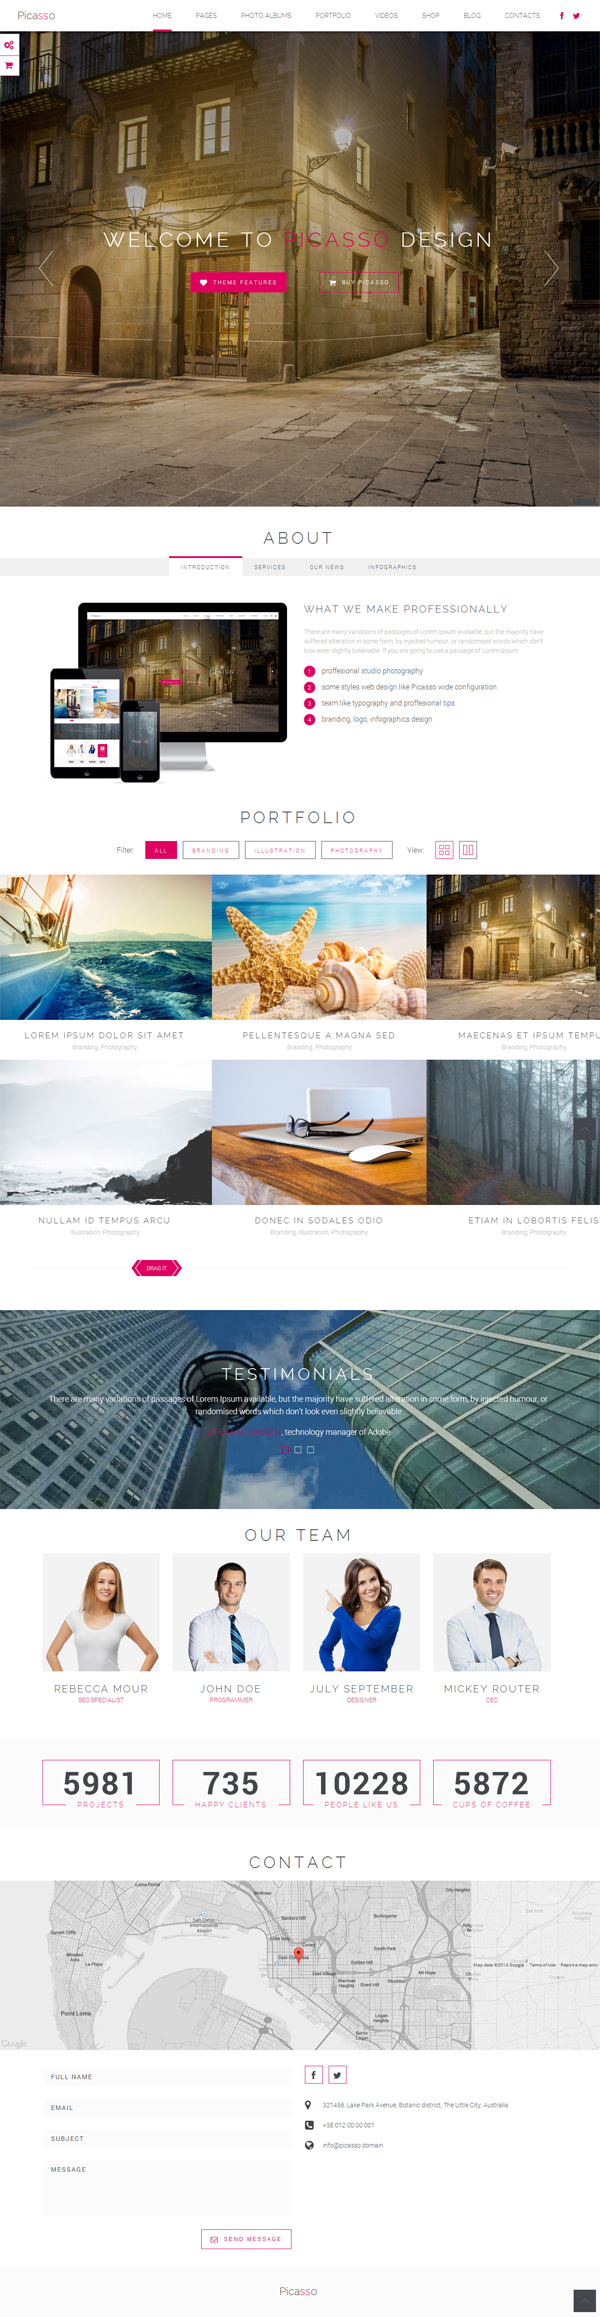 Picasso - Responsive Multi-Purpose WordPress Theme